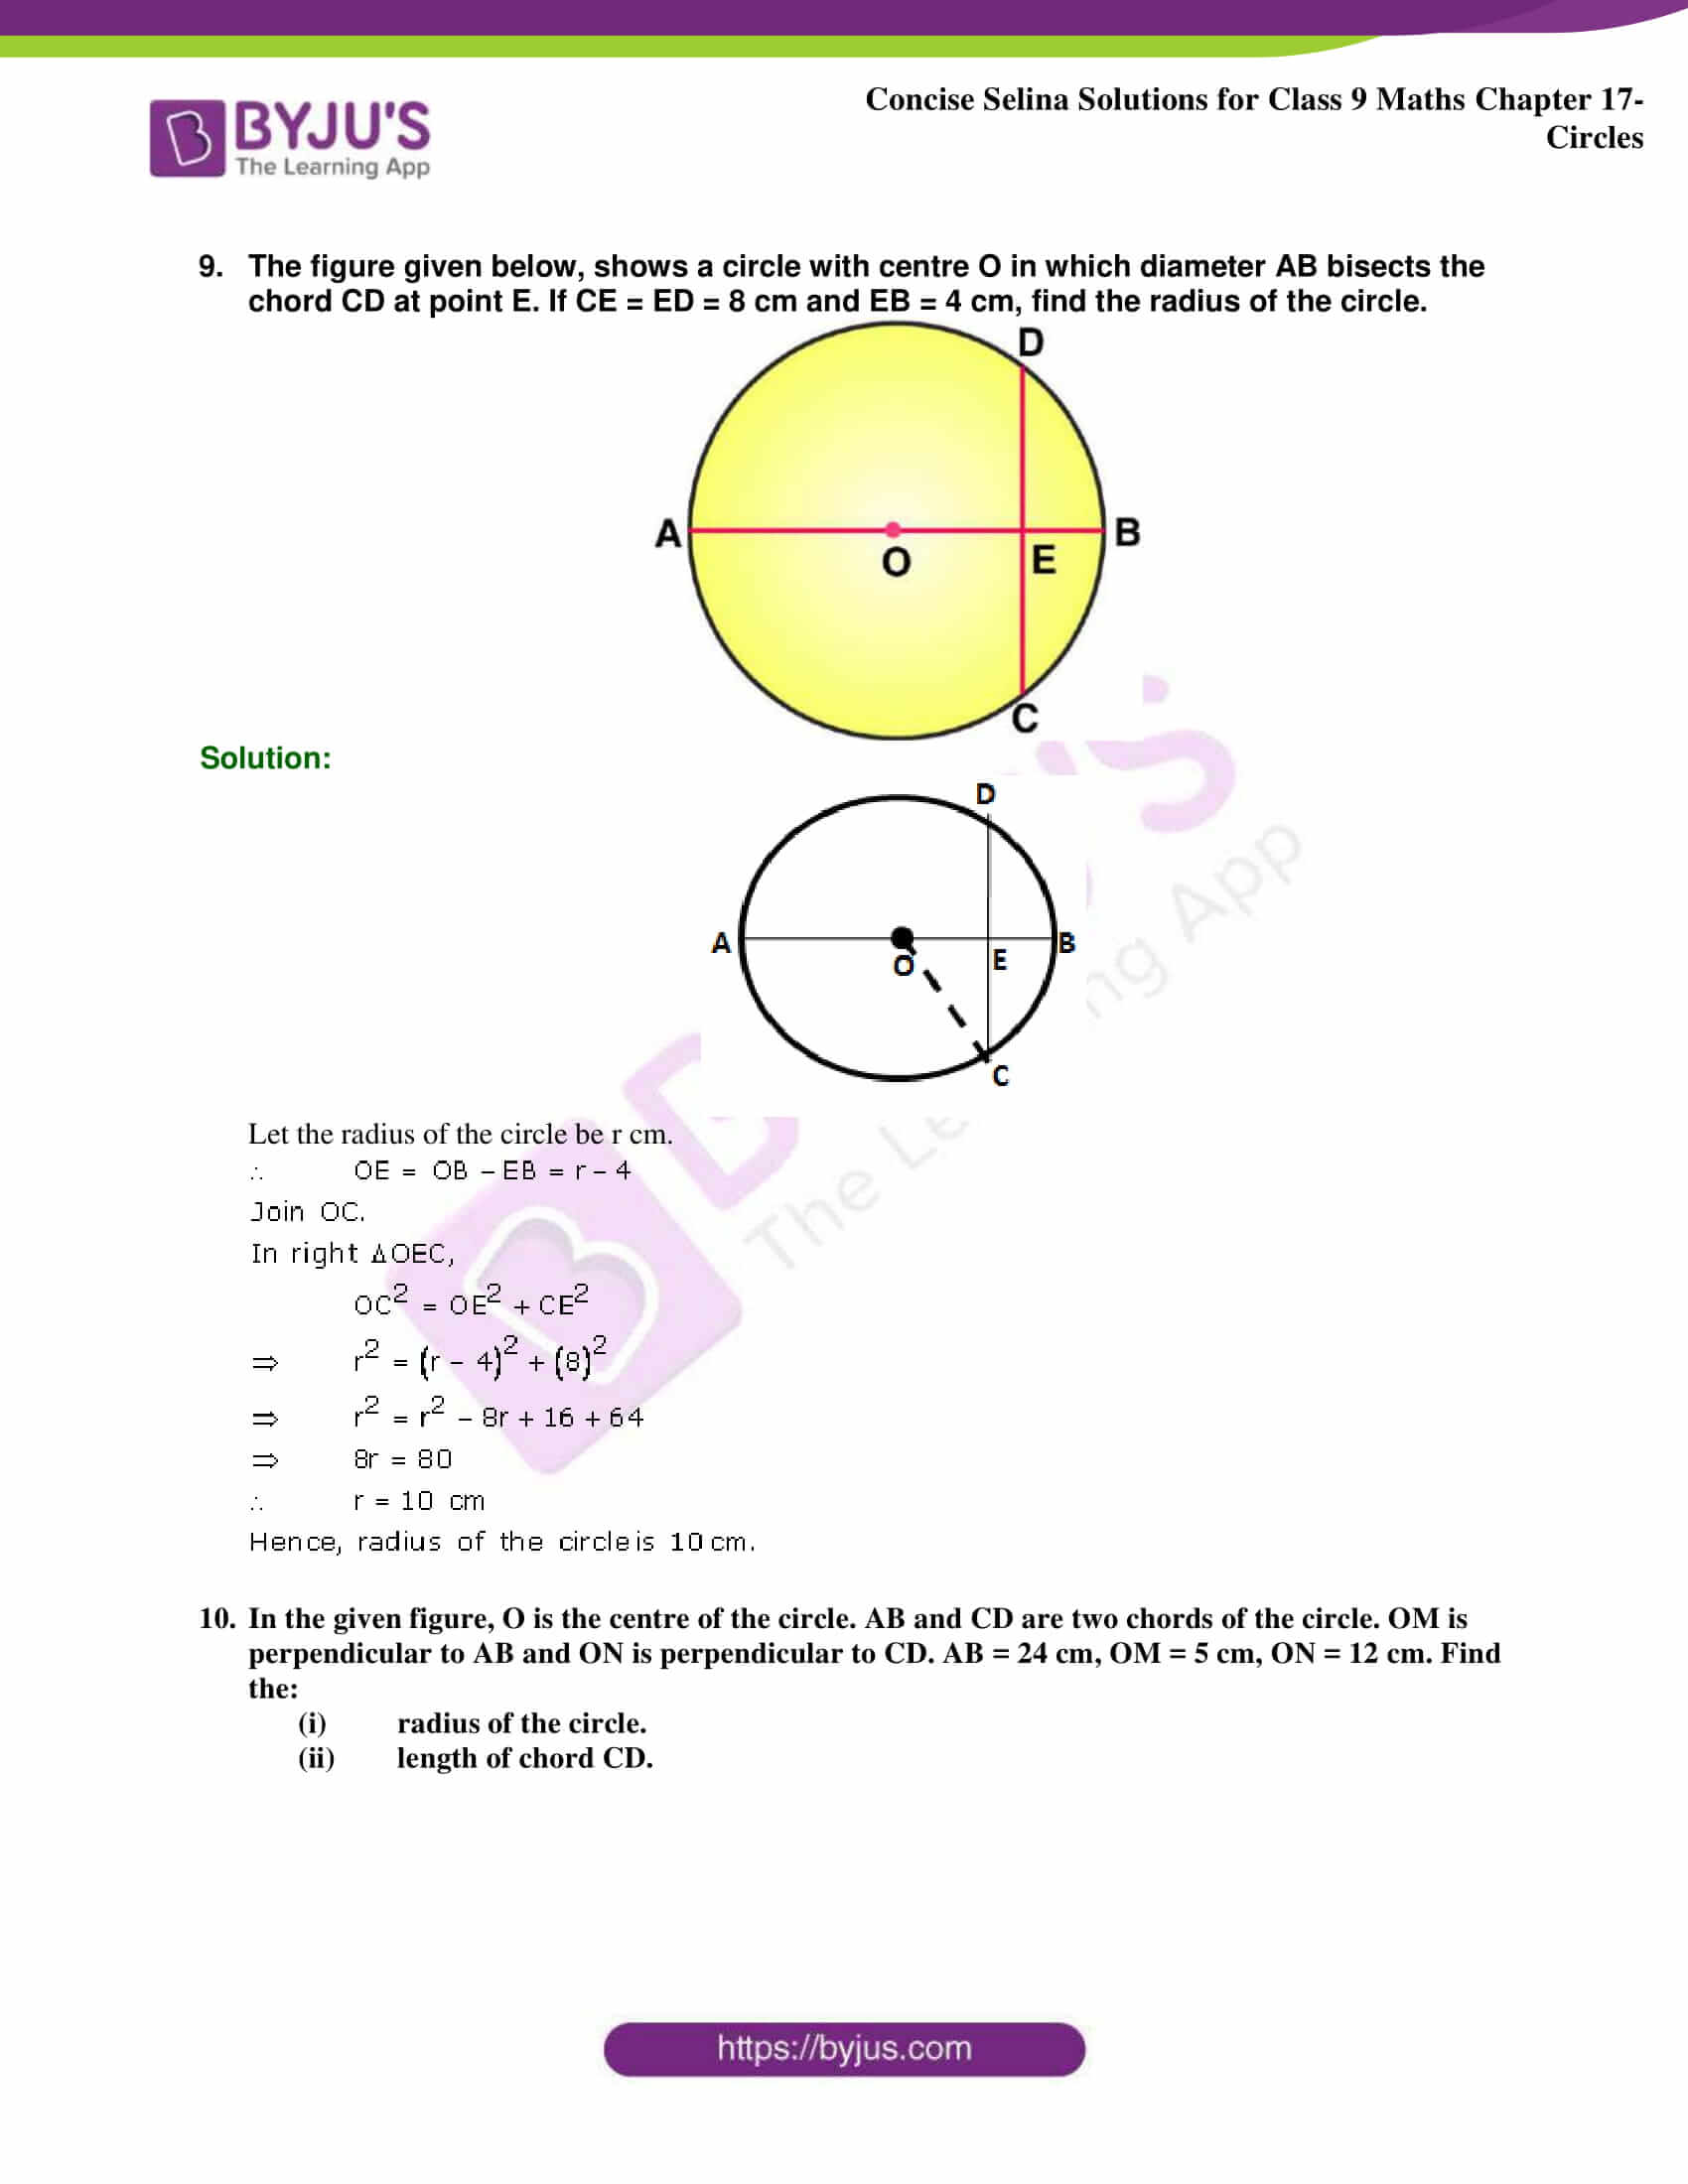 Concise Selina Solutions Class 9 Maths Chapter 17 Circles part 07